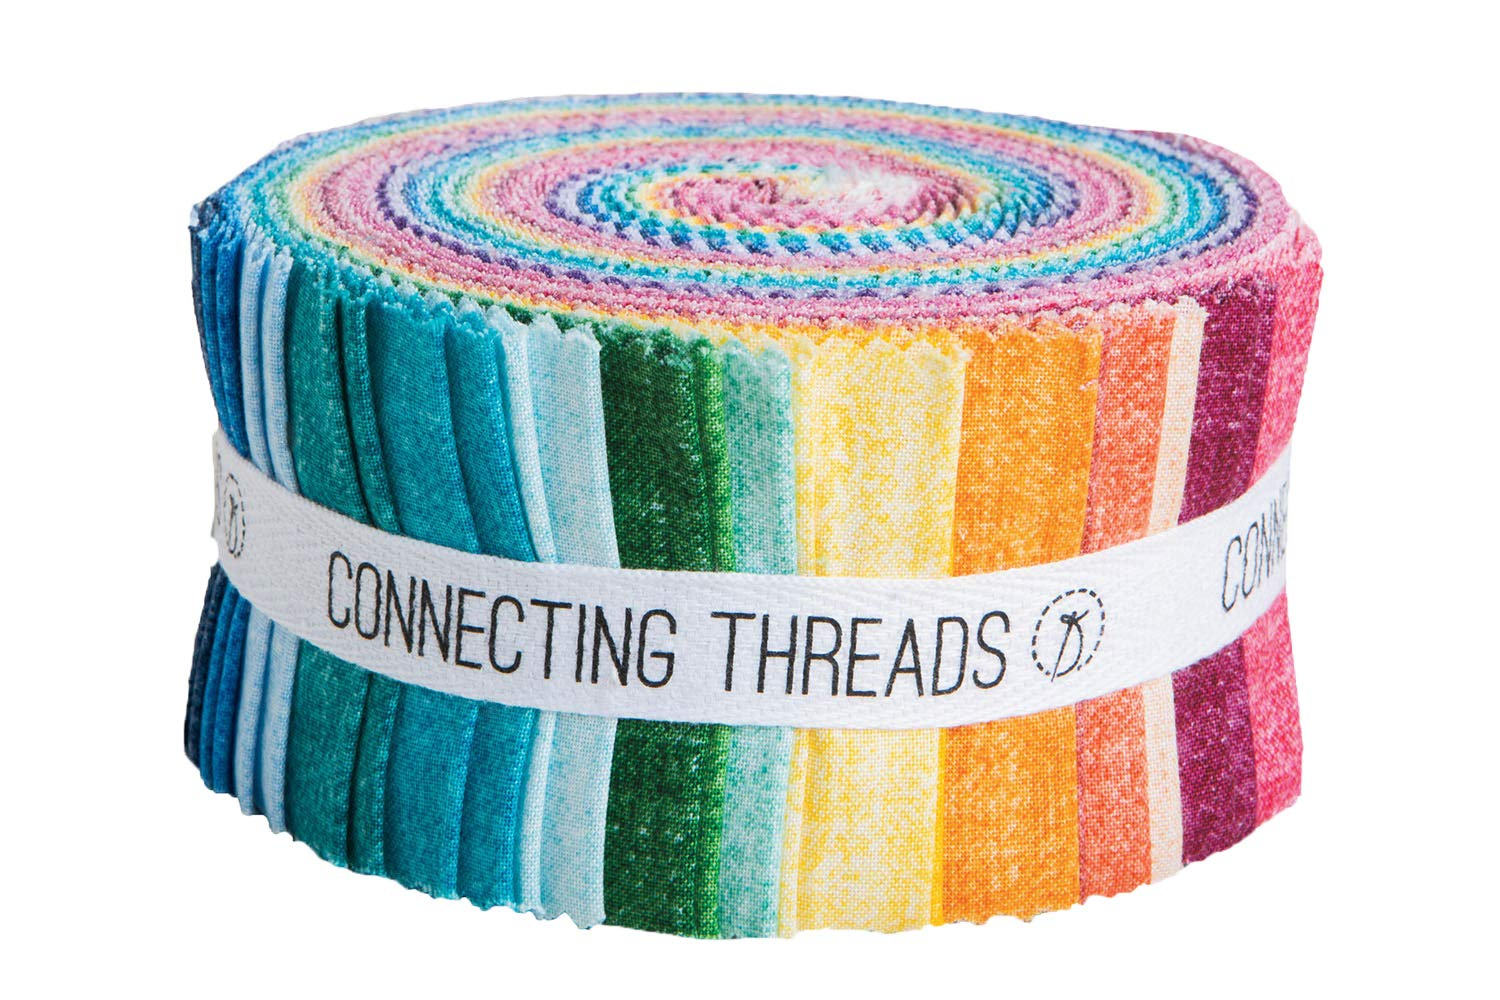 Swirl Tonals - 2.5 Strips Connecting Threads Blender Collection Precut Quilting Cotton Fabric Bundle